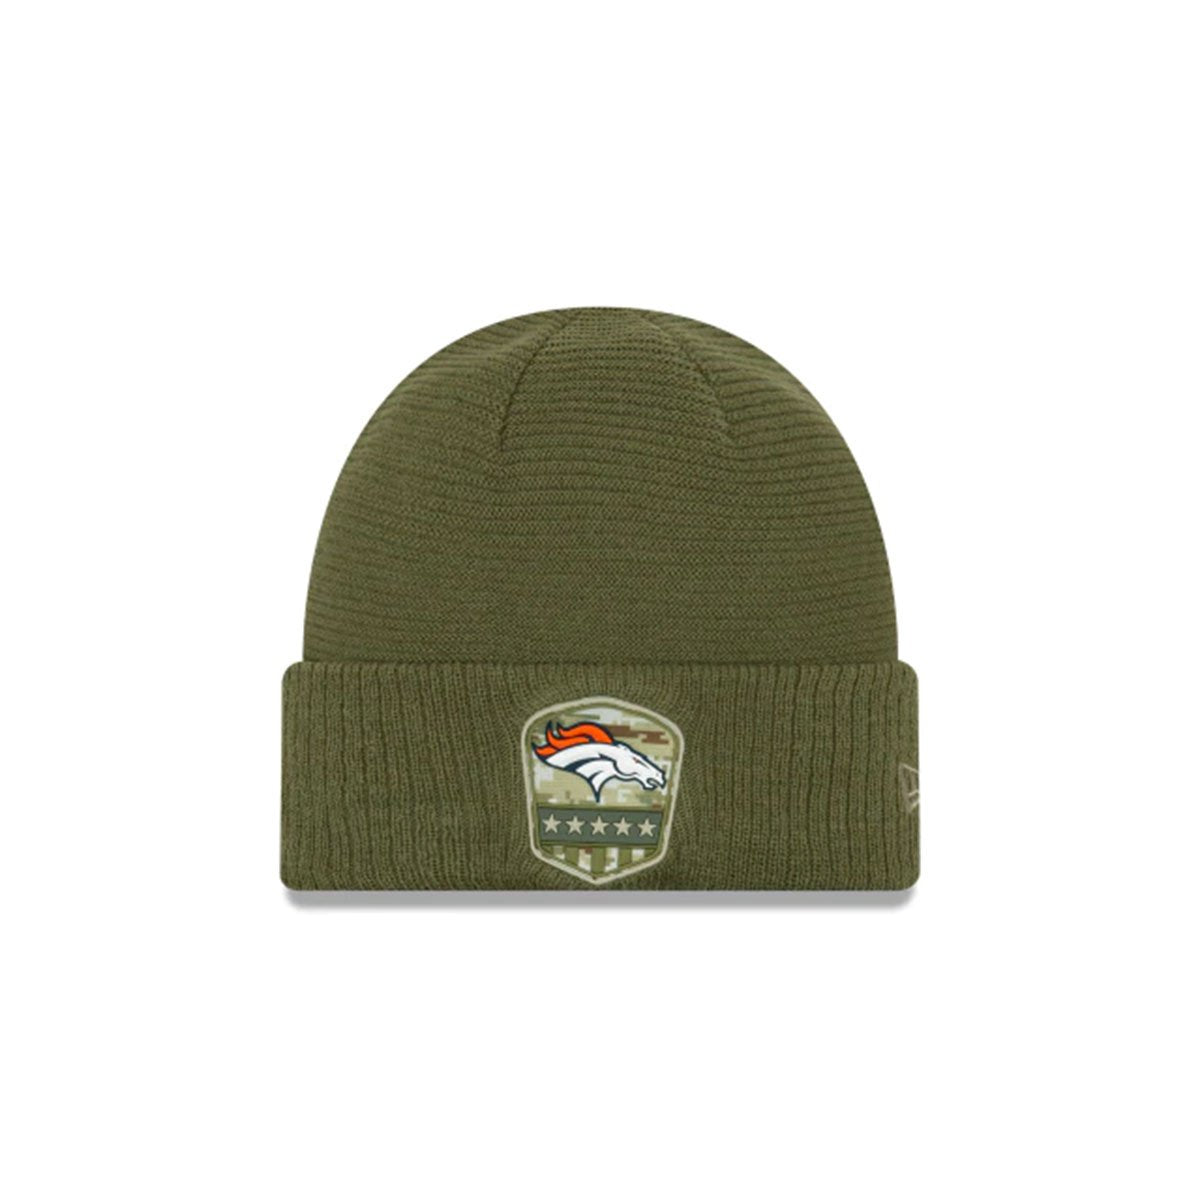 DENVER BRONCOS SALUTE TO SERVICE CUFF KNIT GREEN/WHITE